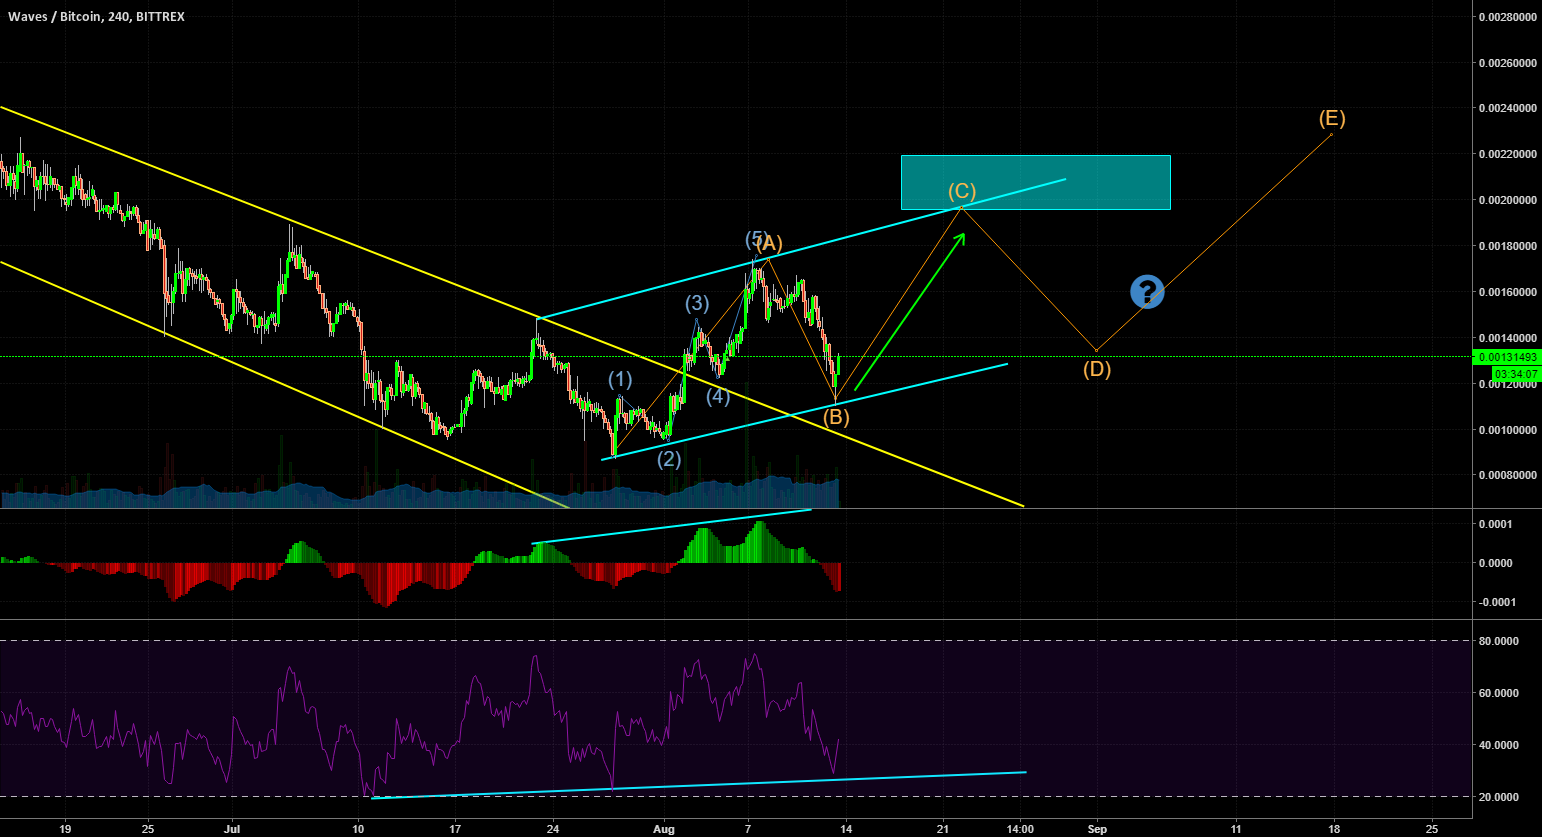 Updated chart for $waves, going for leg 3 in 5 legs up